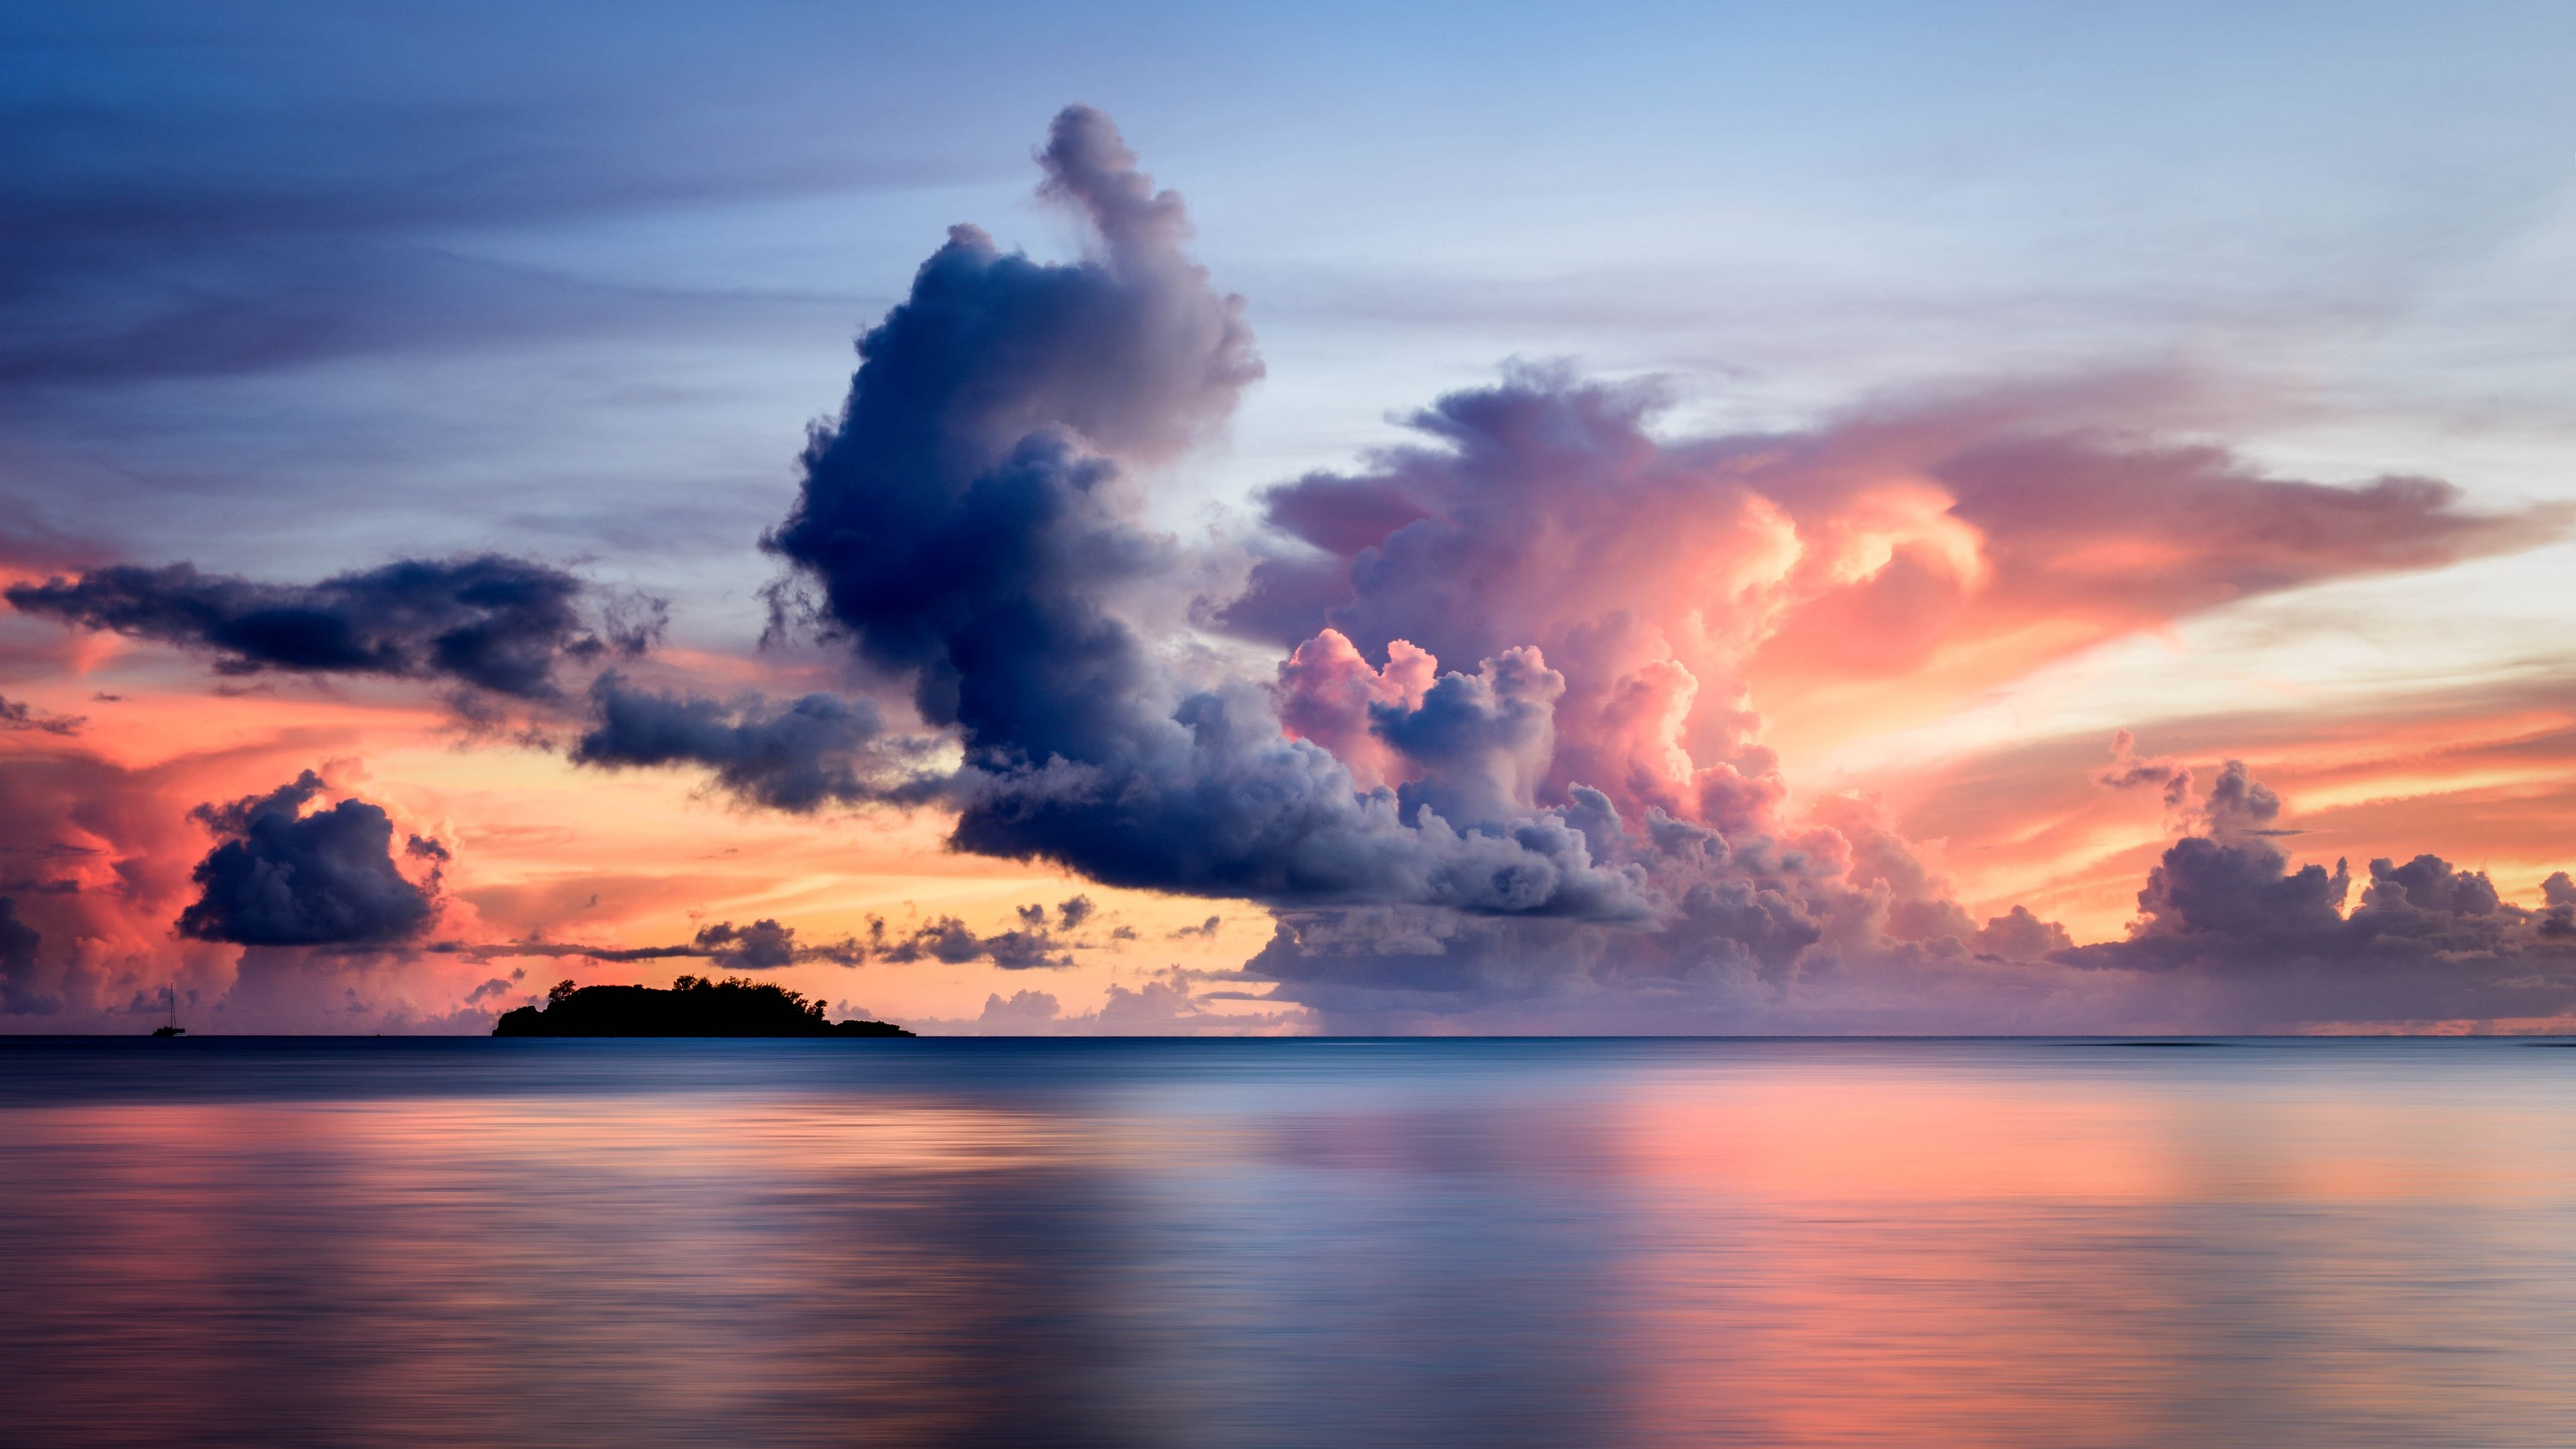 Sea Clouds Horizon Island Sky Sunset 4k Sea Horizon Clouds Cloud Wallpaper Clouds 8k Wallpaper